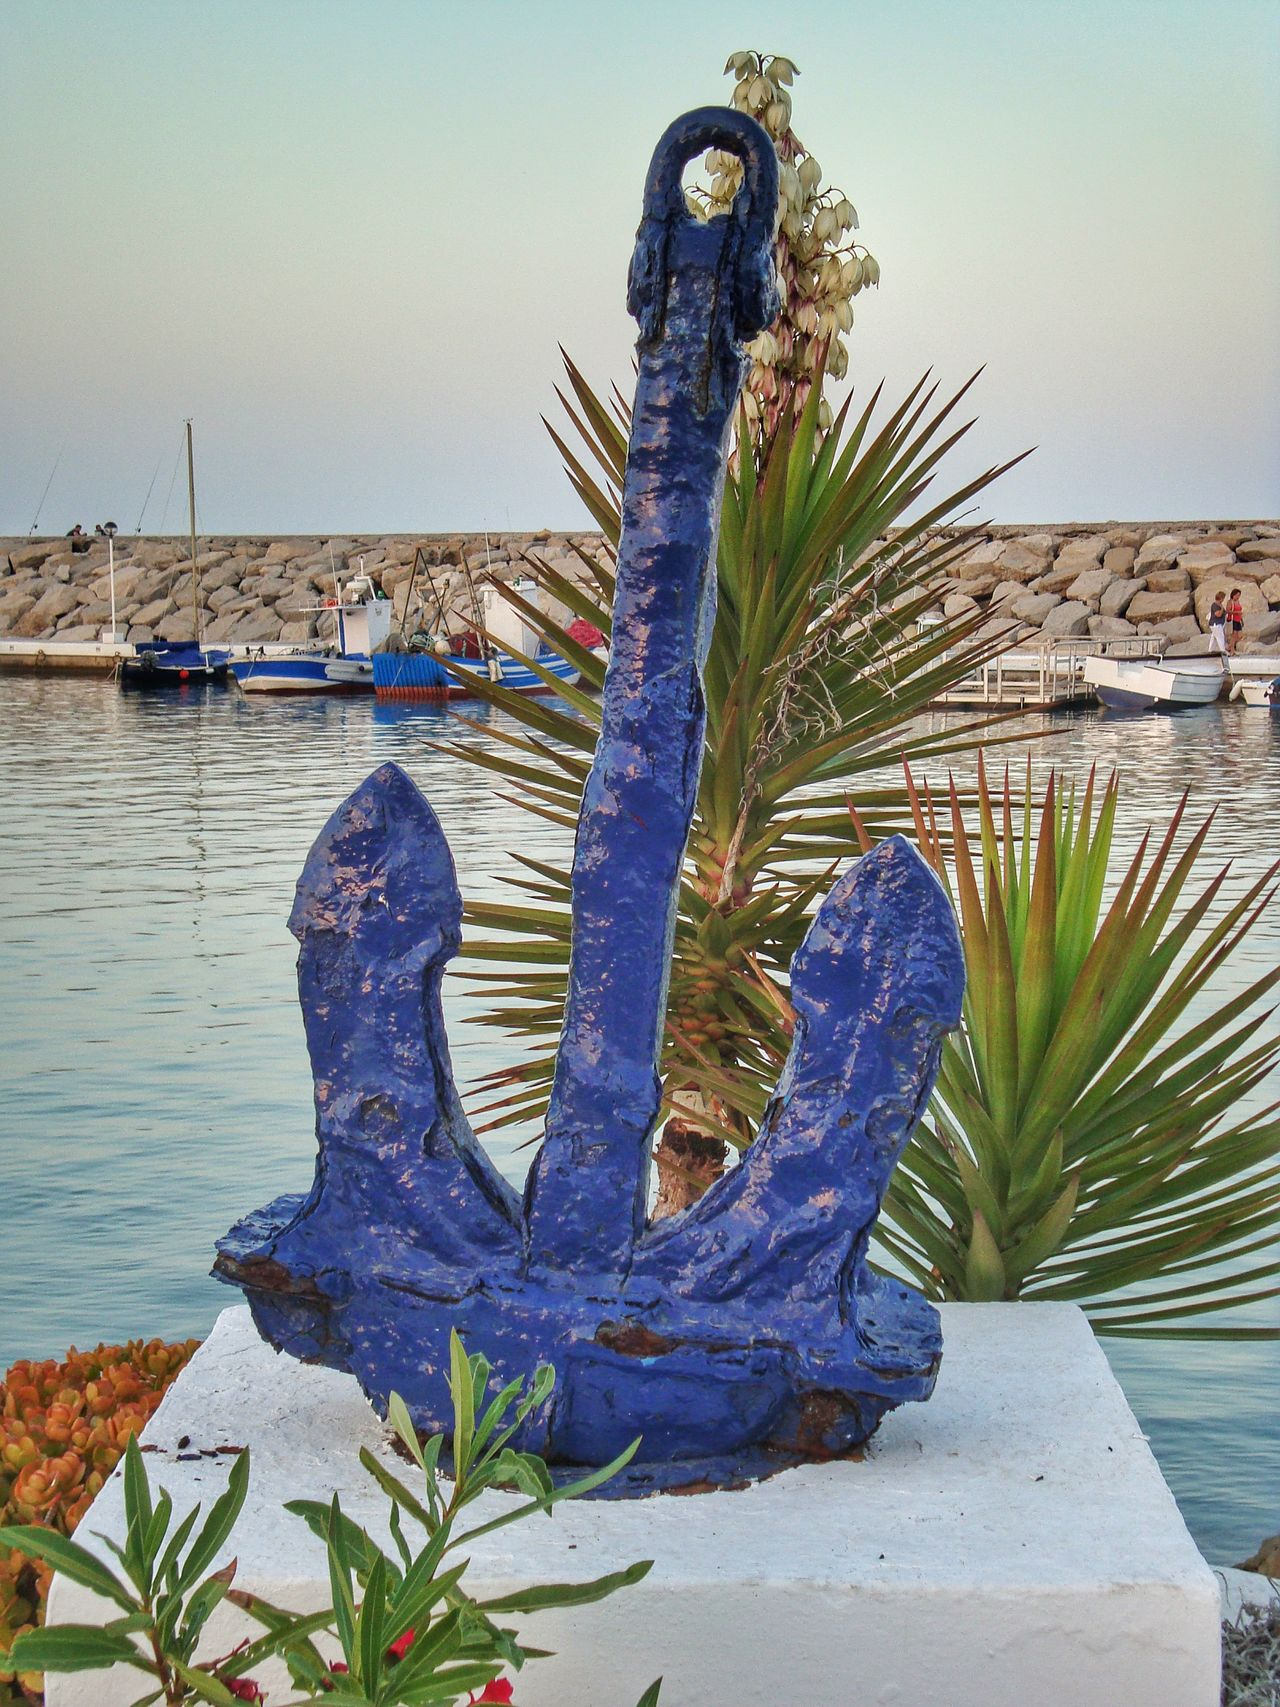 Anchor Anchor Monument Anchor On Stand Anchor Statue Anchors Anchors<3 Blue Blue Anchor Blue Color Blue Colour Boats Anchor And Sea Colour Blue Duquesa Duquesa Lighthouse Duquesa Marina Duquesa Spain Growth Marina Duquesa No People Outdoors